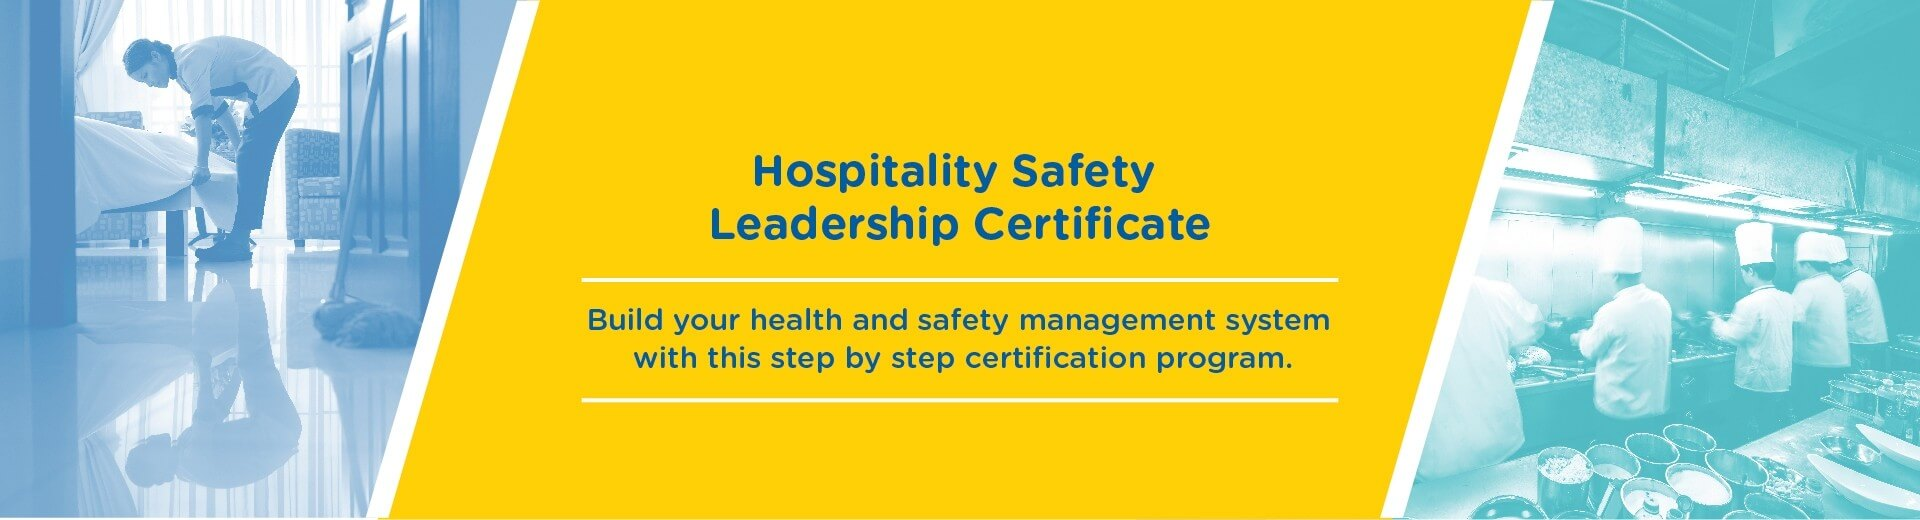 Hospitality Safety Leadership Certificate